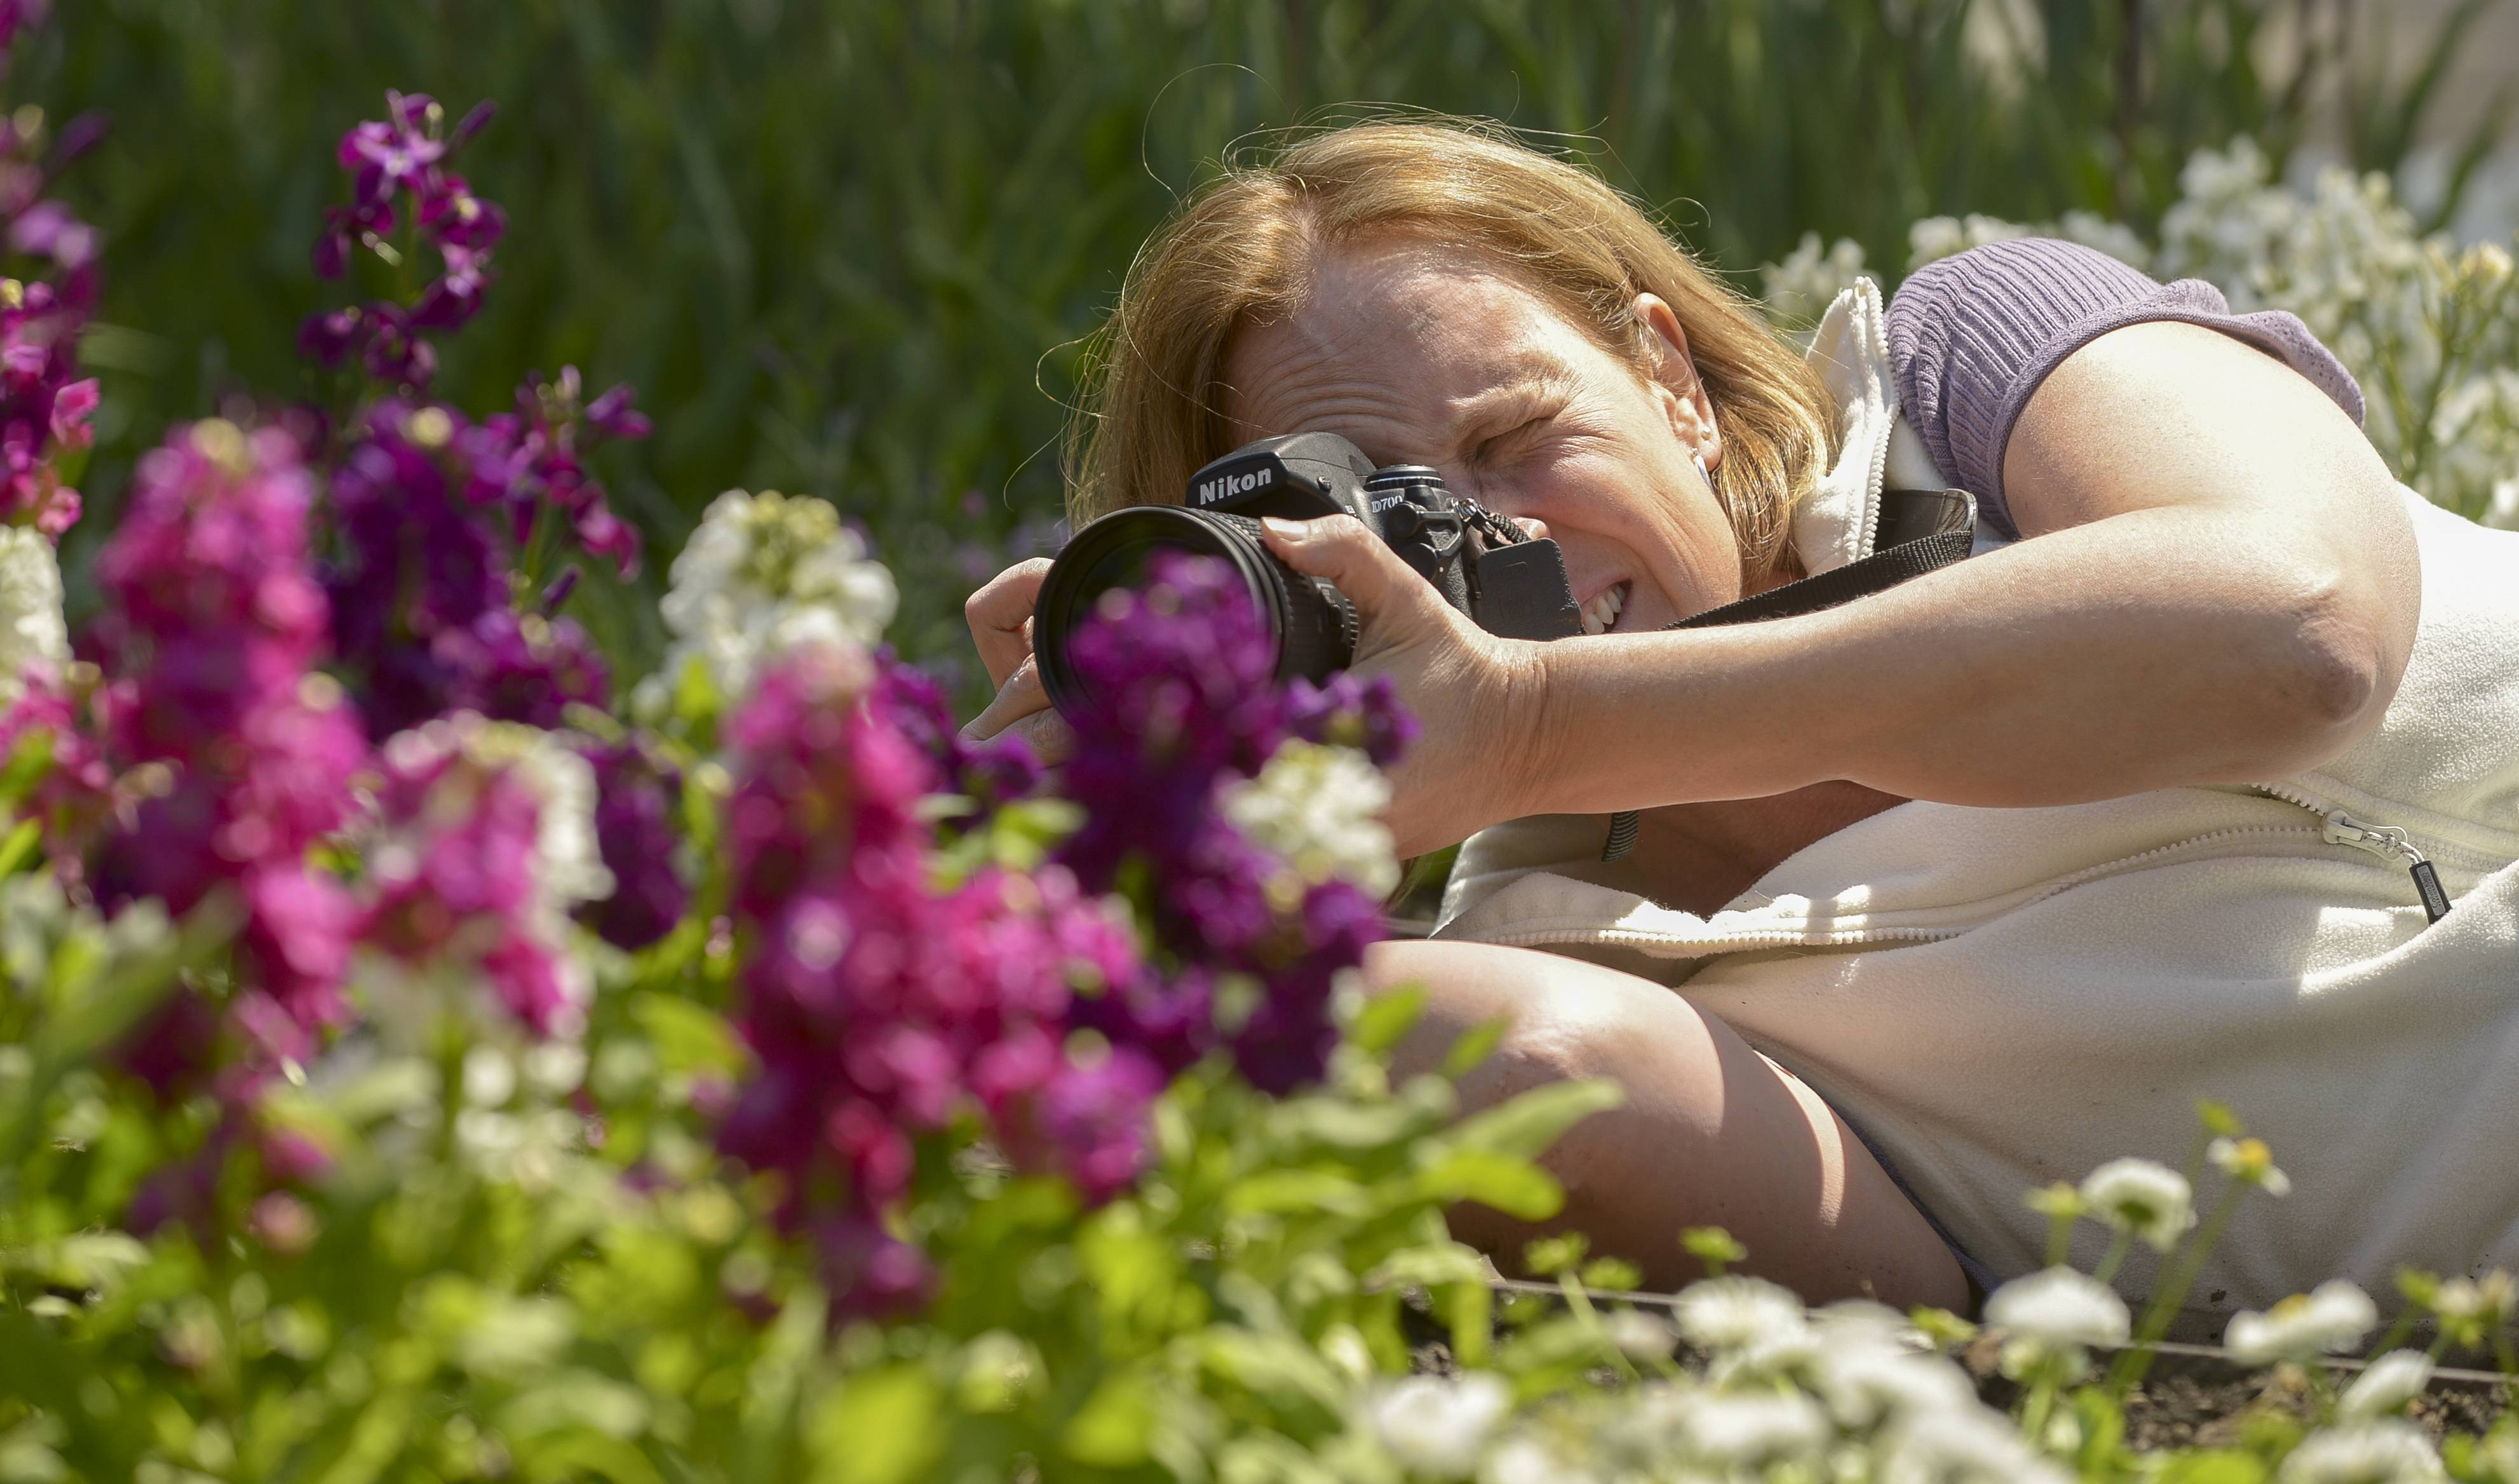 Marjorie Suto, of Elburn, gets on the ground to get a better angle while photographing flowers in Cantigny Park's Upper Bur Oak Garden, Tuesday.